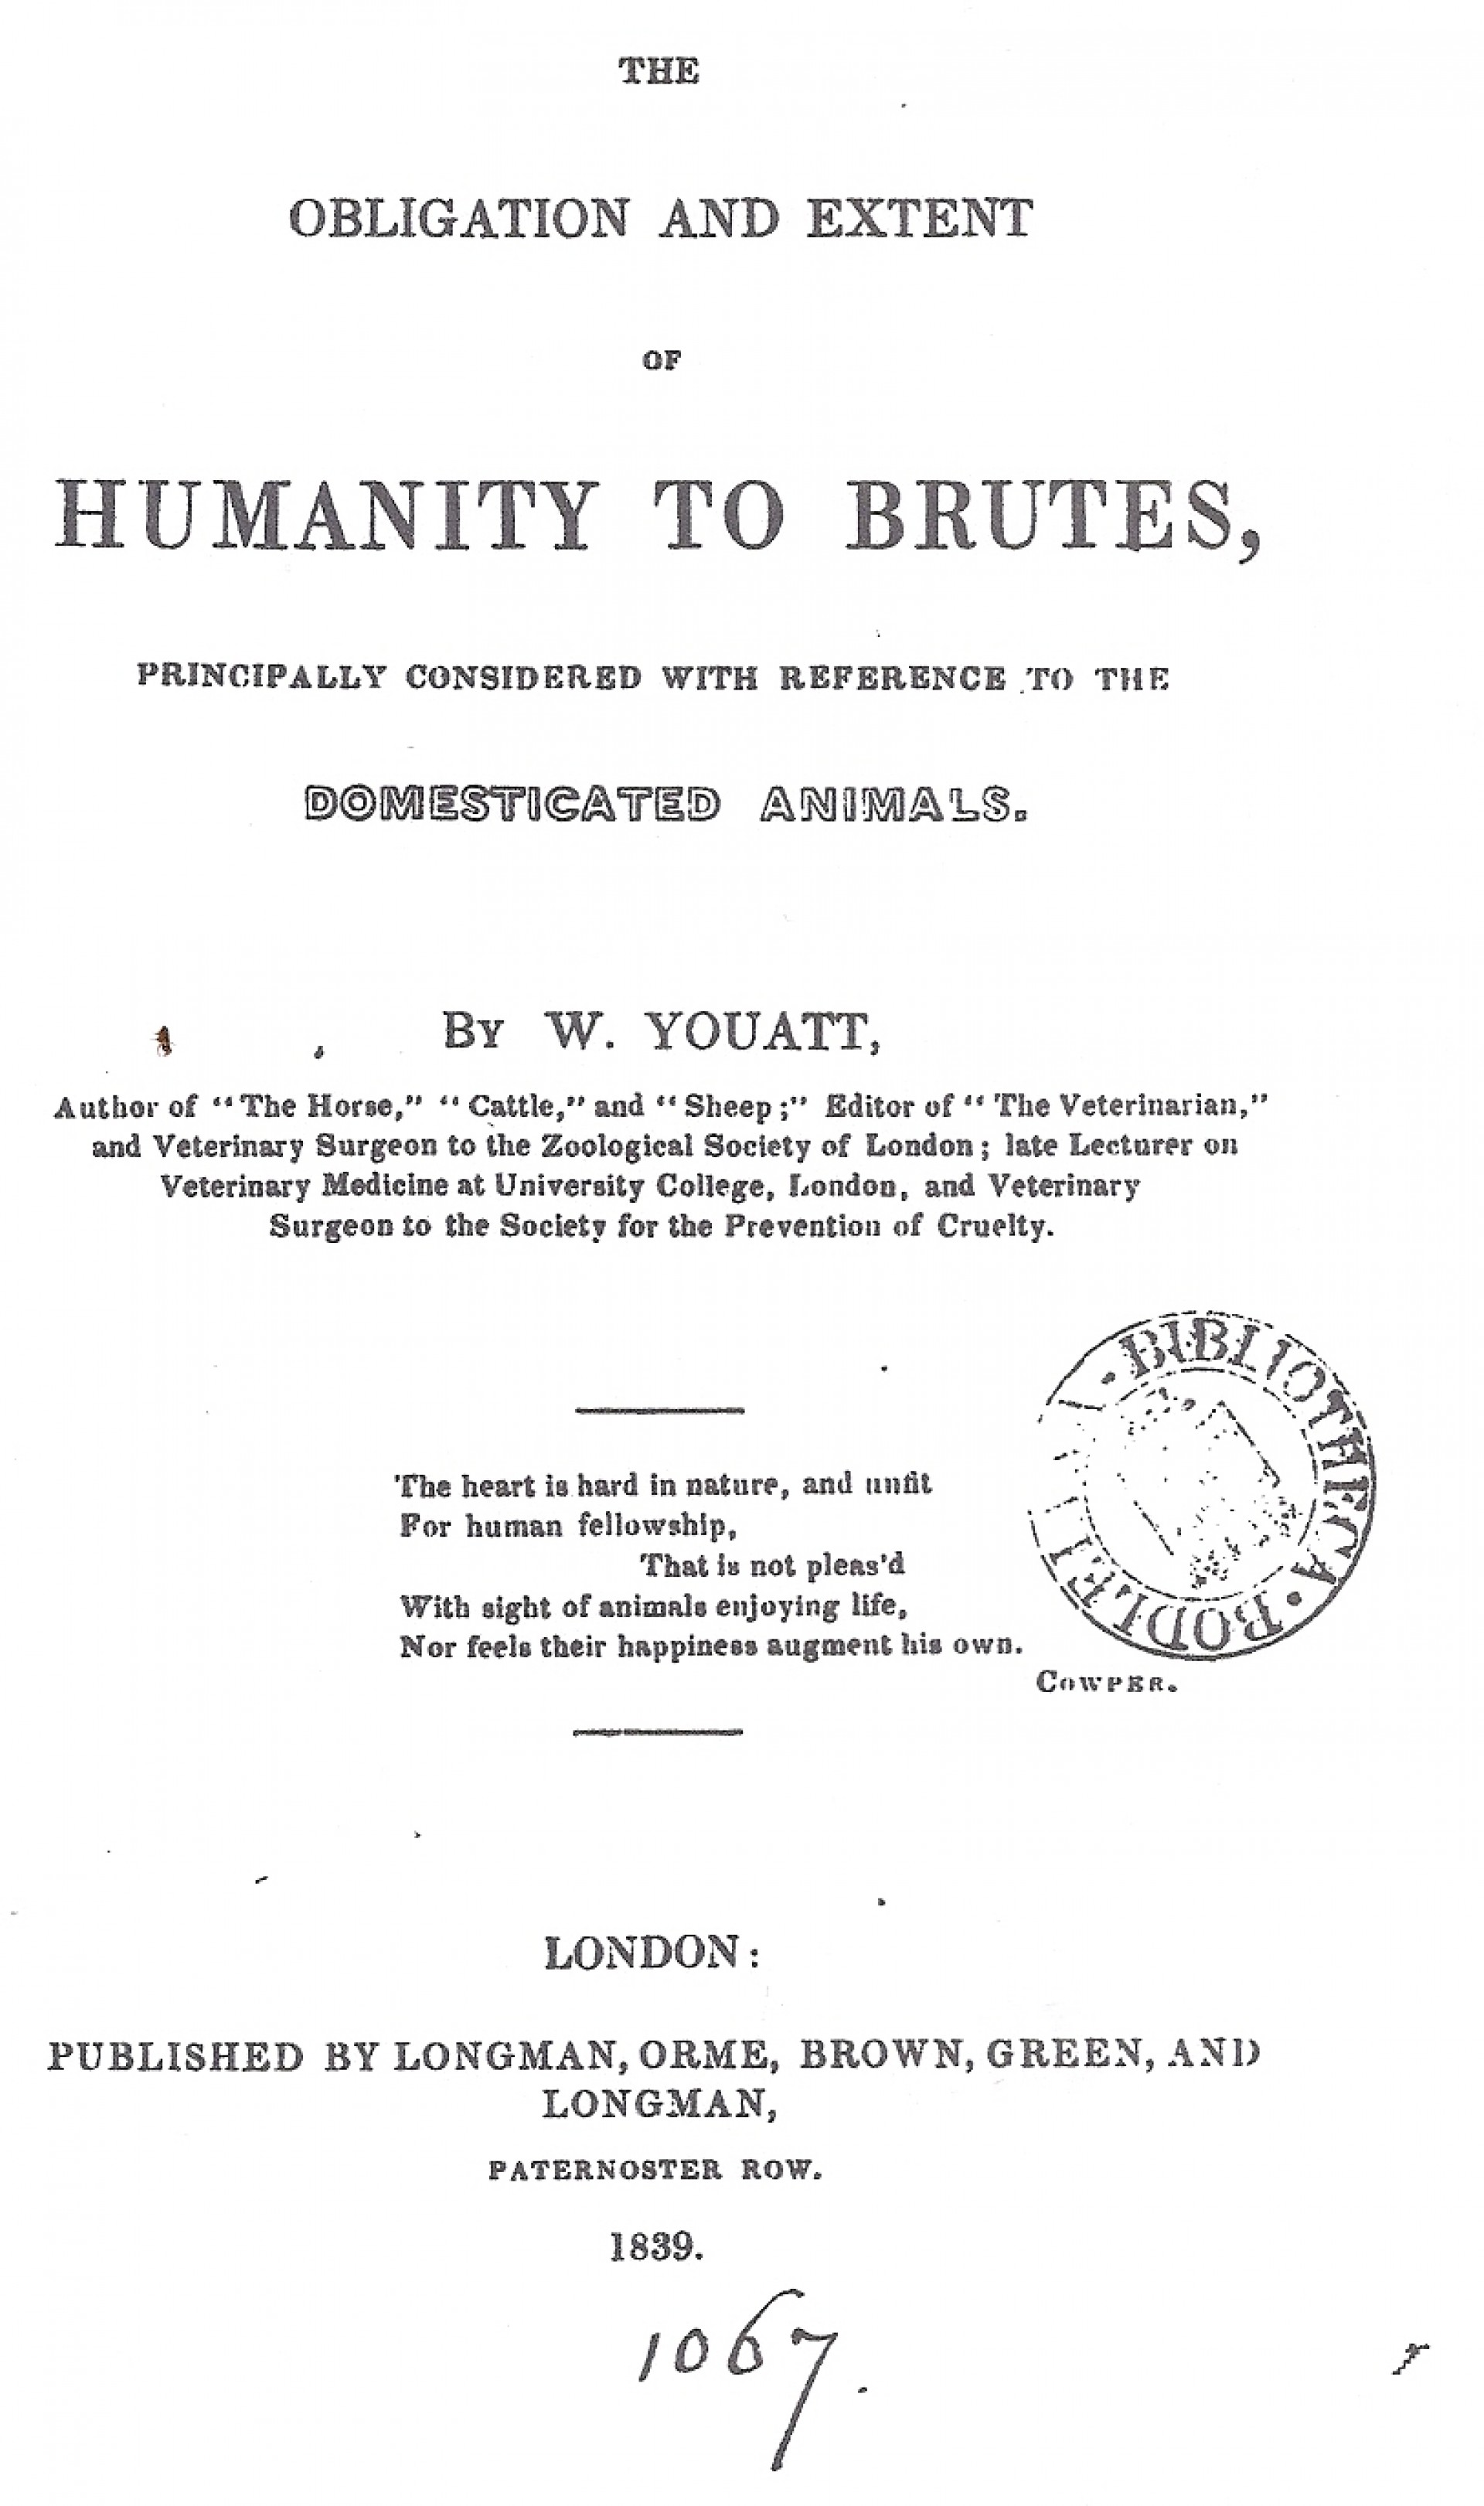 017 Animal Cruelty Essay Quakers And Issues Animals Matter To God Abuse Persuasive Conclusion William Youat Testing Outline Topics Titles Thesis Pro Stunning Hook 1920